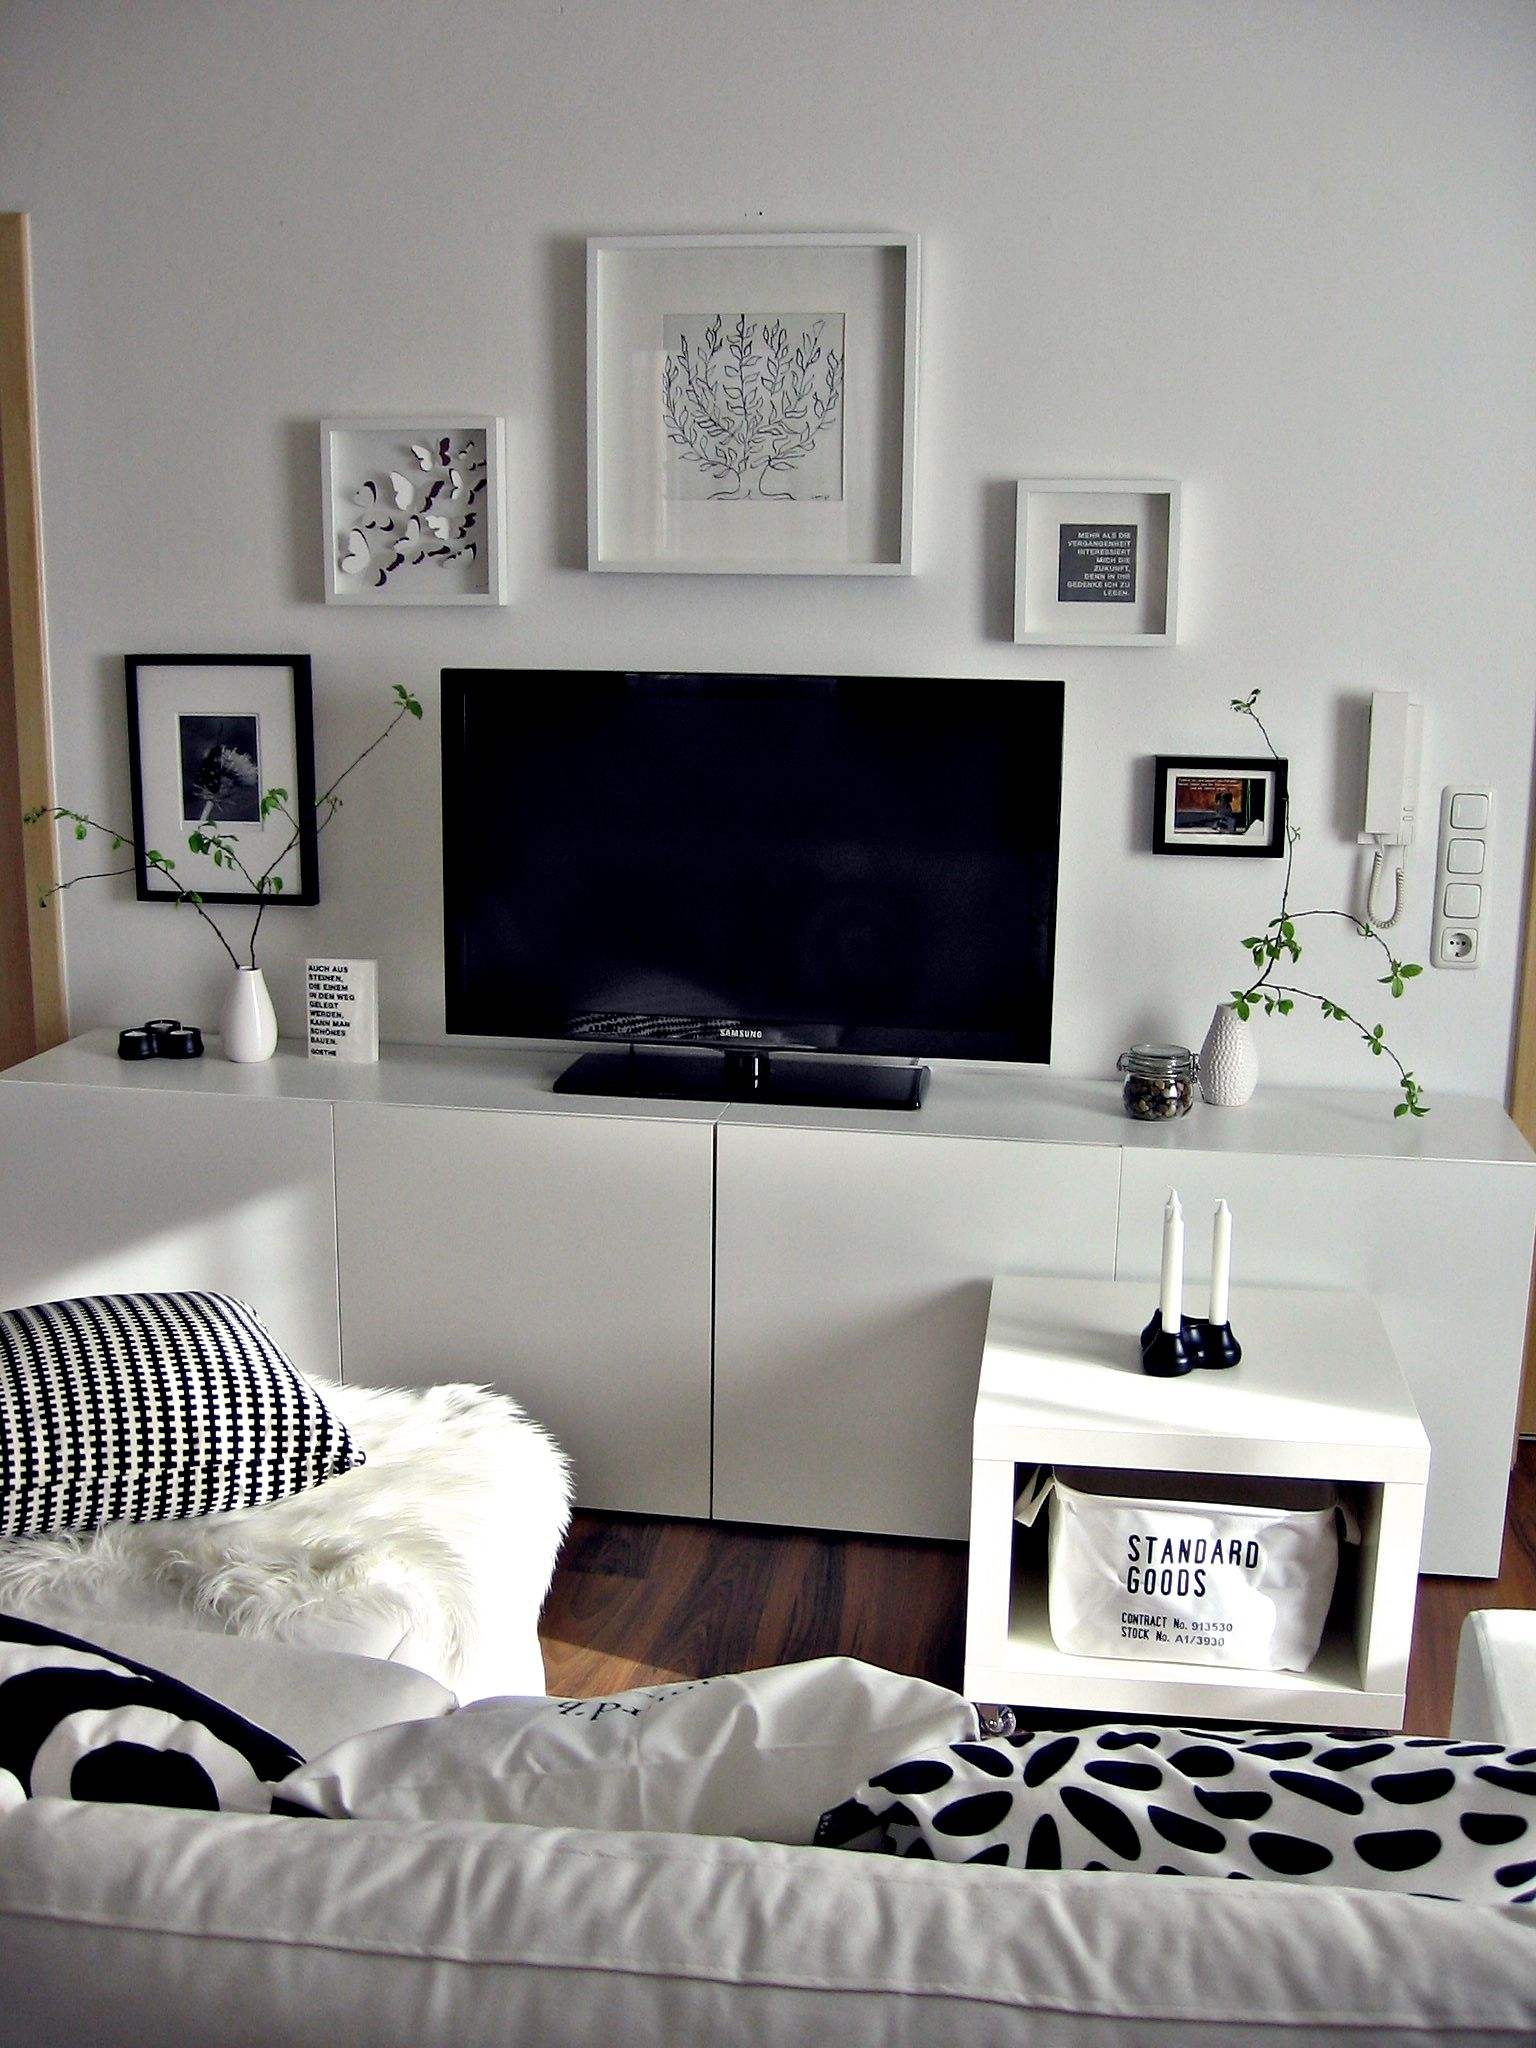 Wohnzimmer Ideen Wandgestaltung Tv Framing The Tv Is Good Use Of Wall Space Wall Art Haus